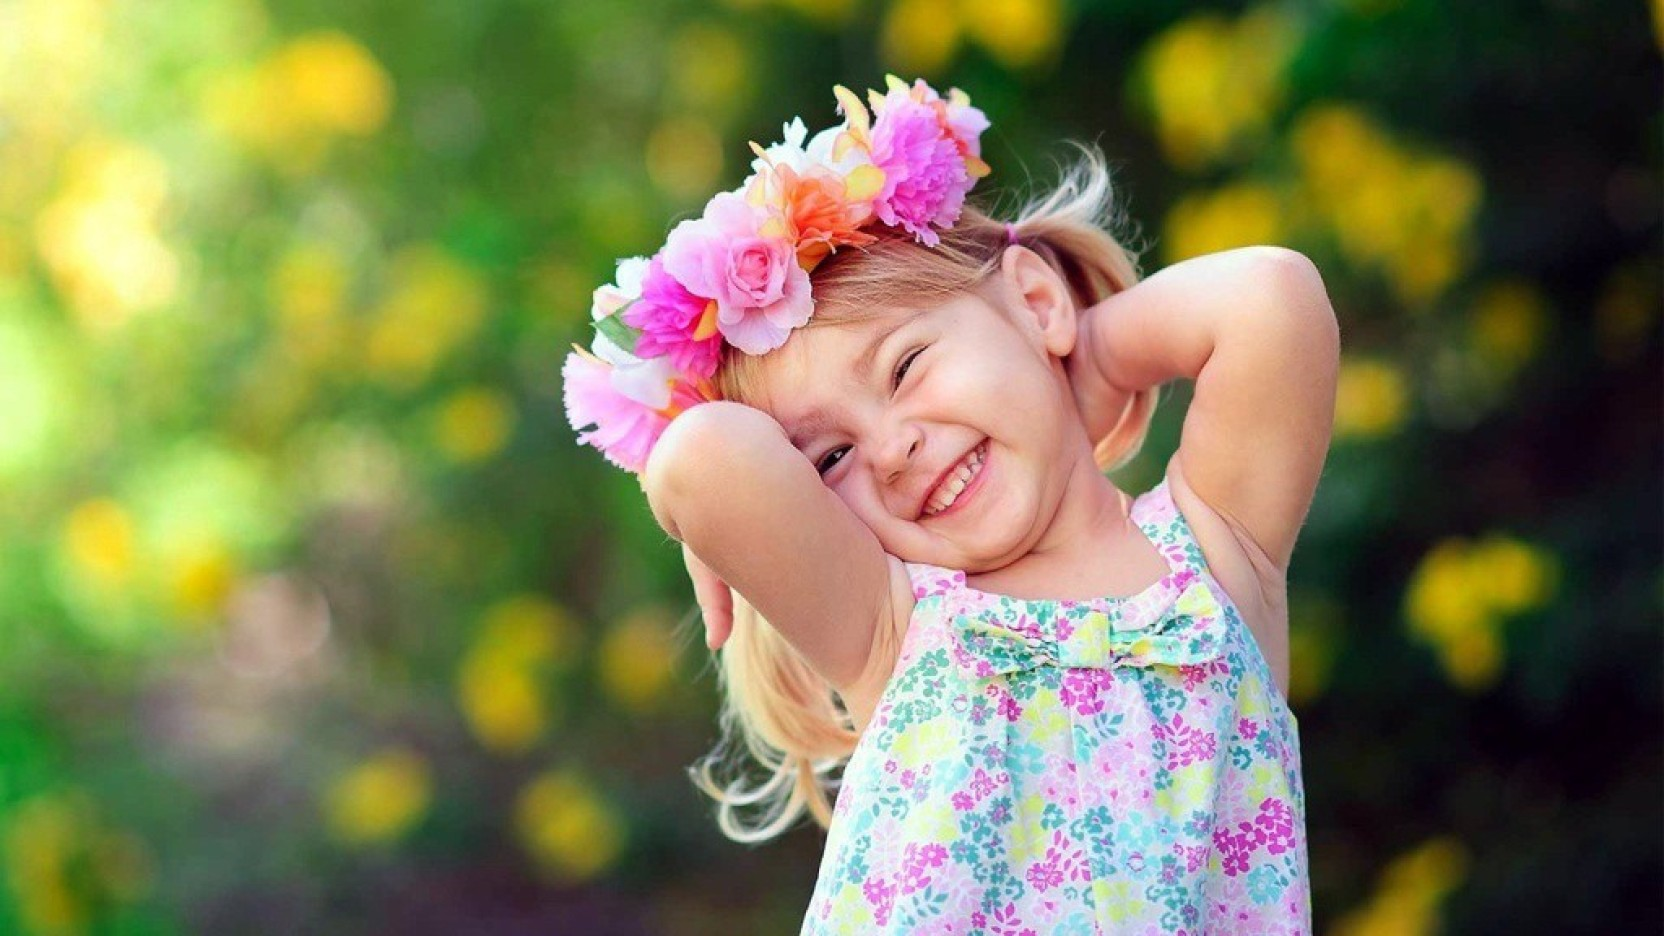 mntc poster of cute baby girl with flower crown (31 cms x46 cms x 31